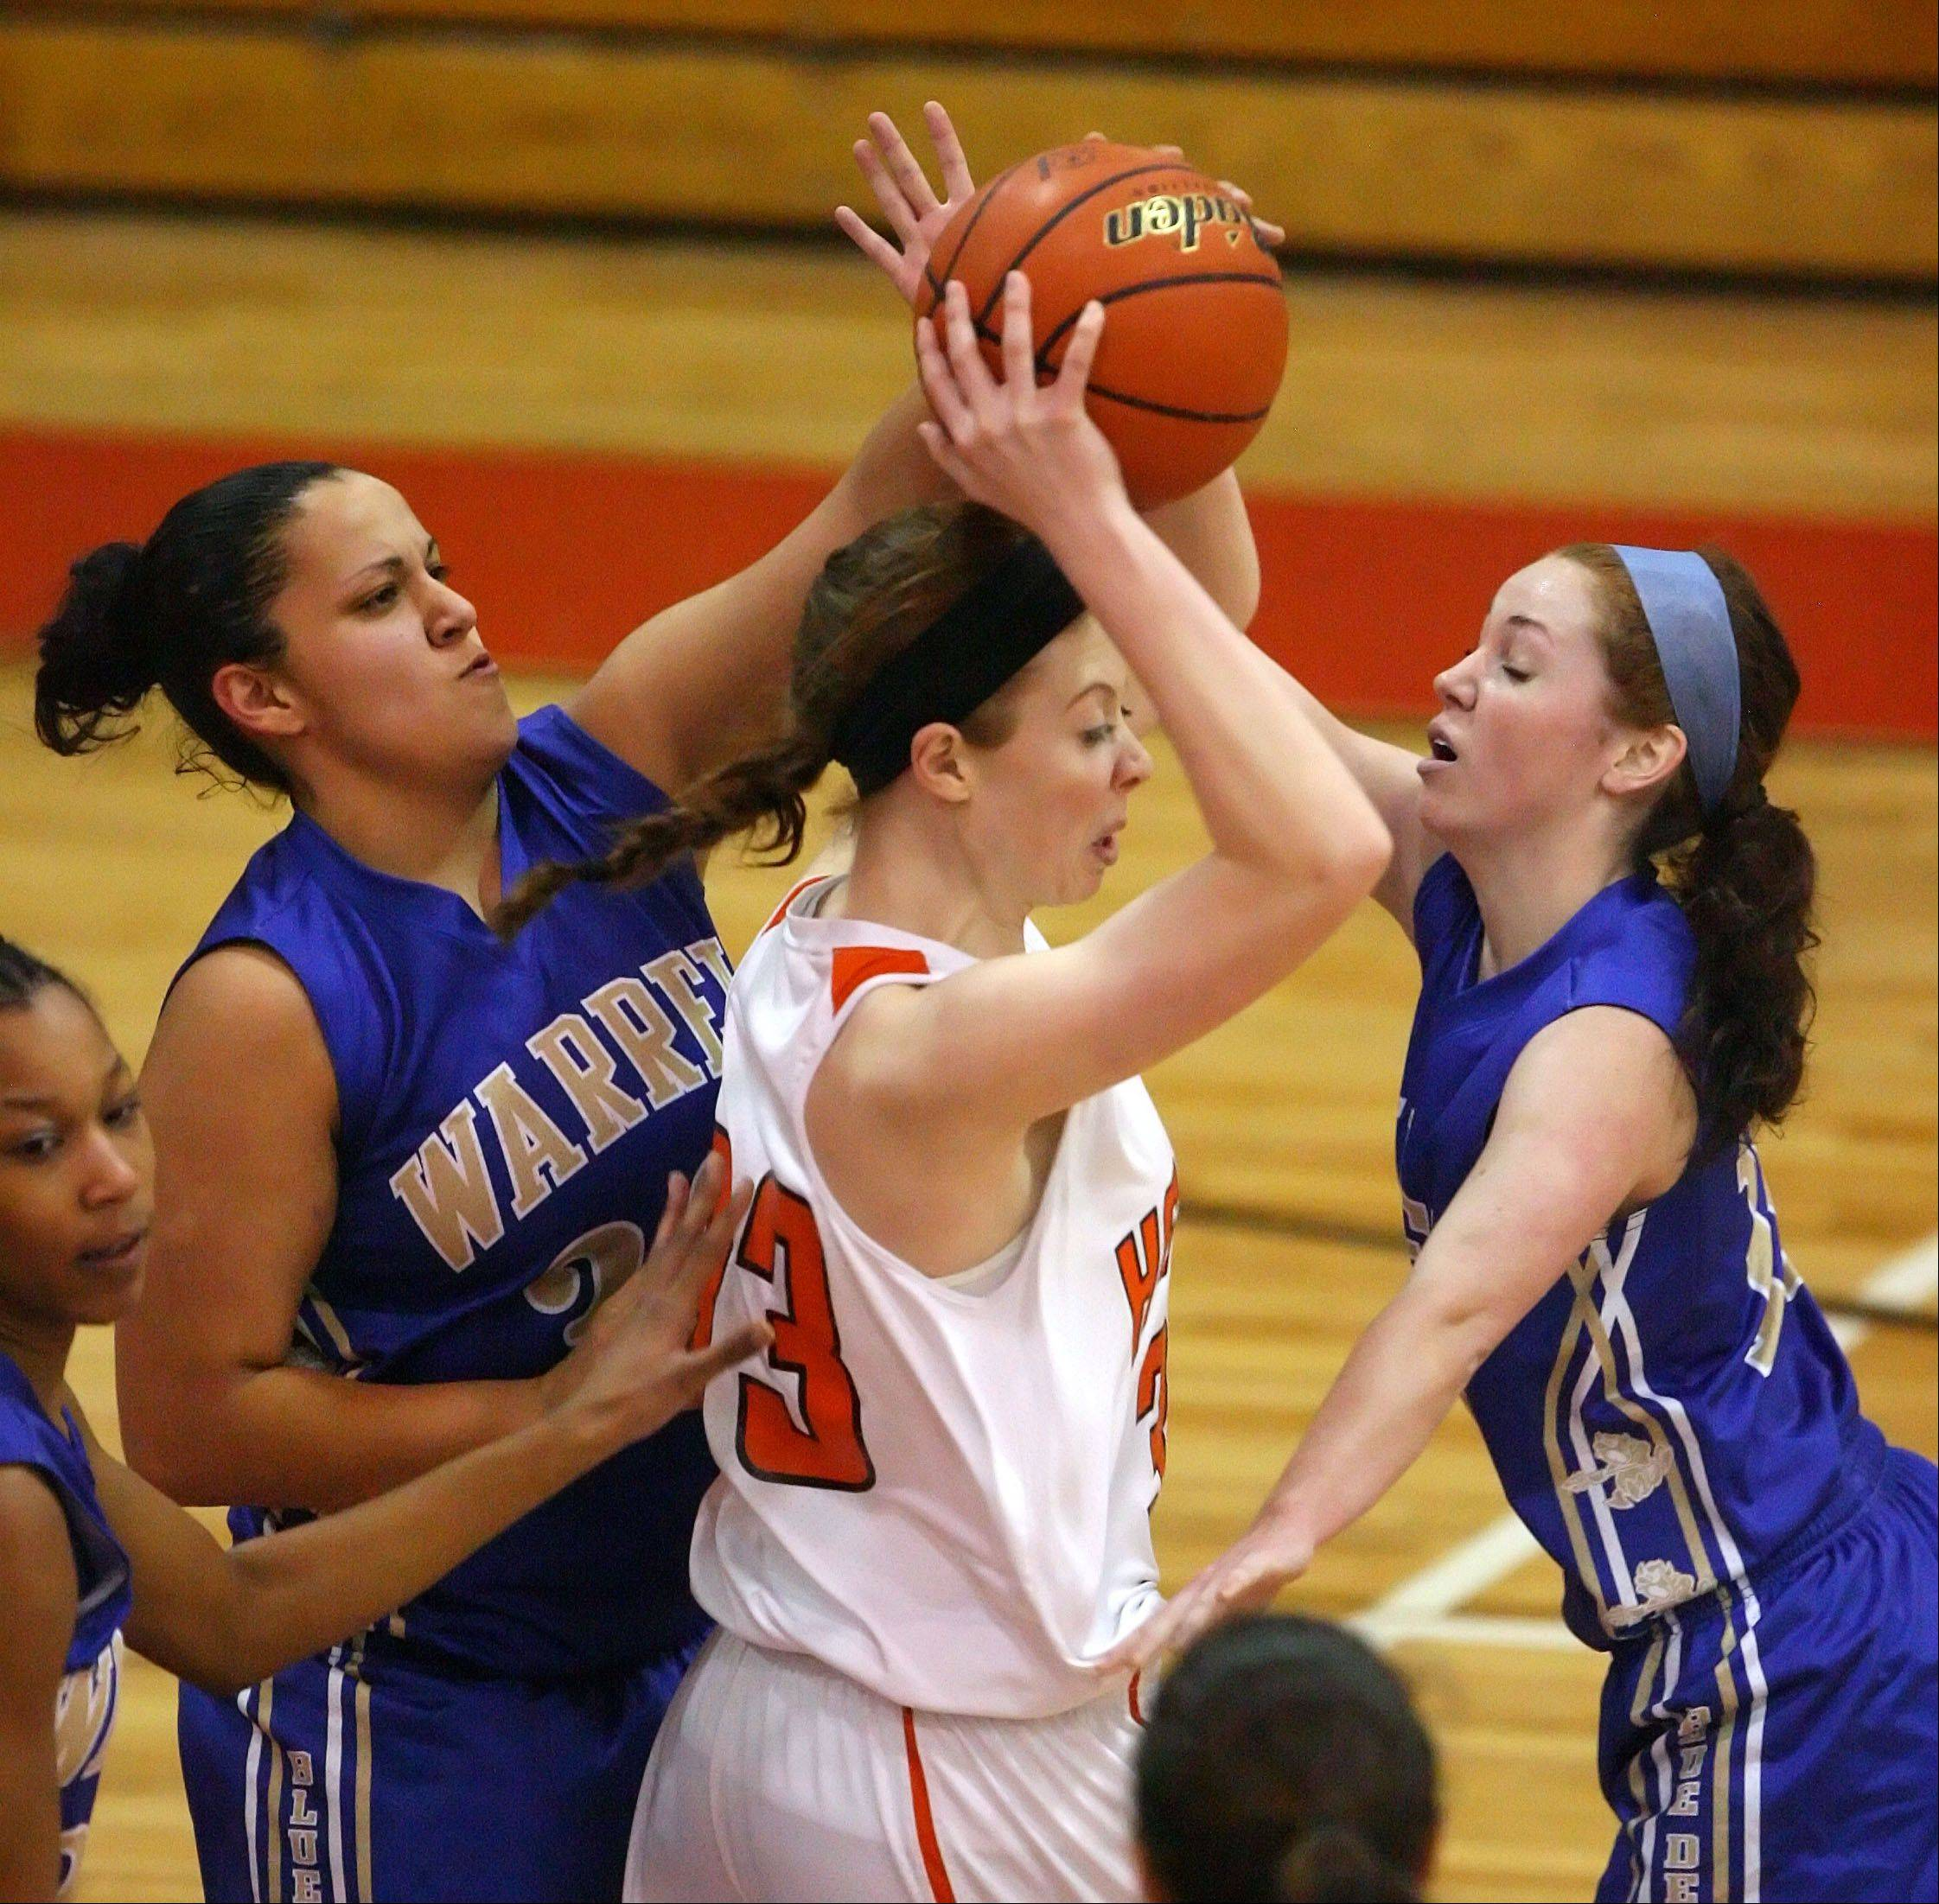 Warren's Jamie Stirling, left, and Rachel Brown double team Hersey's Ashley Raulli during Class 4A regional semifinal play Tuesday night at Mundelein.